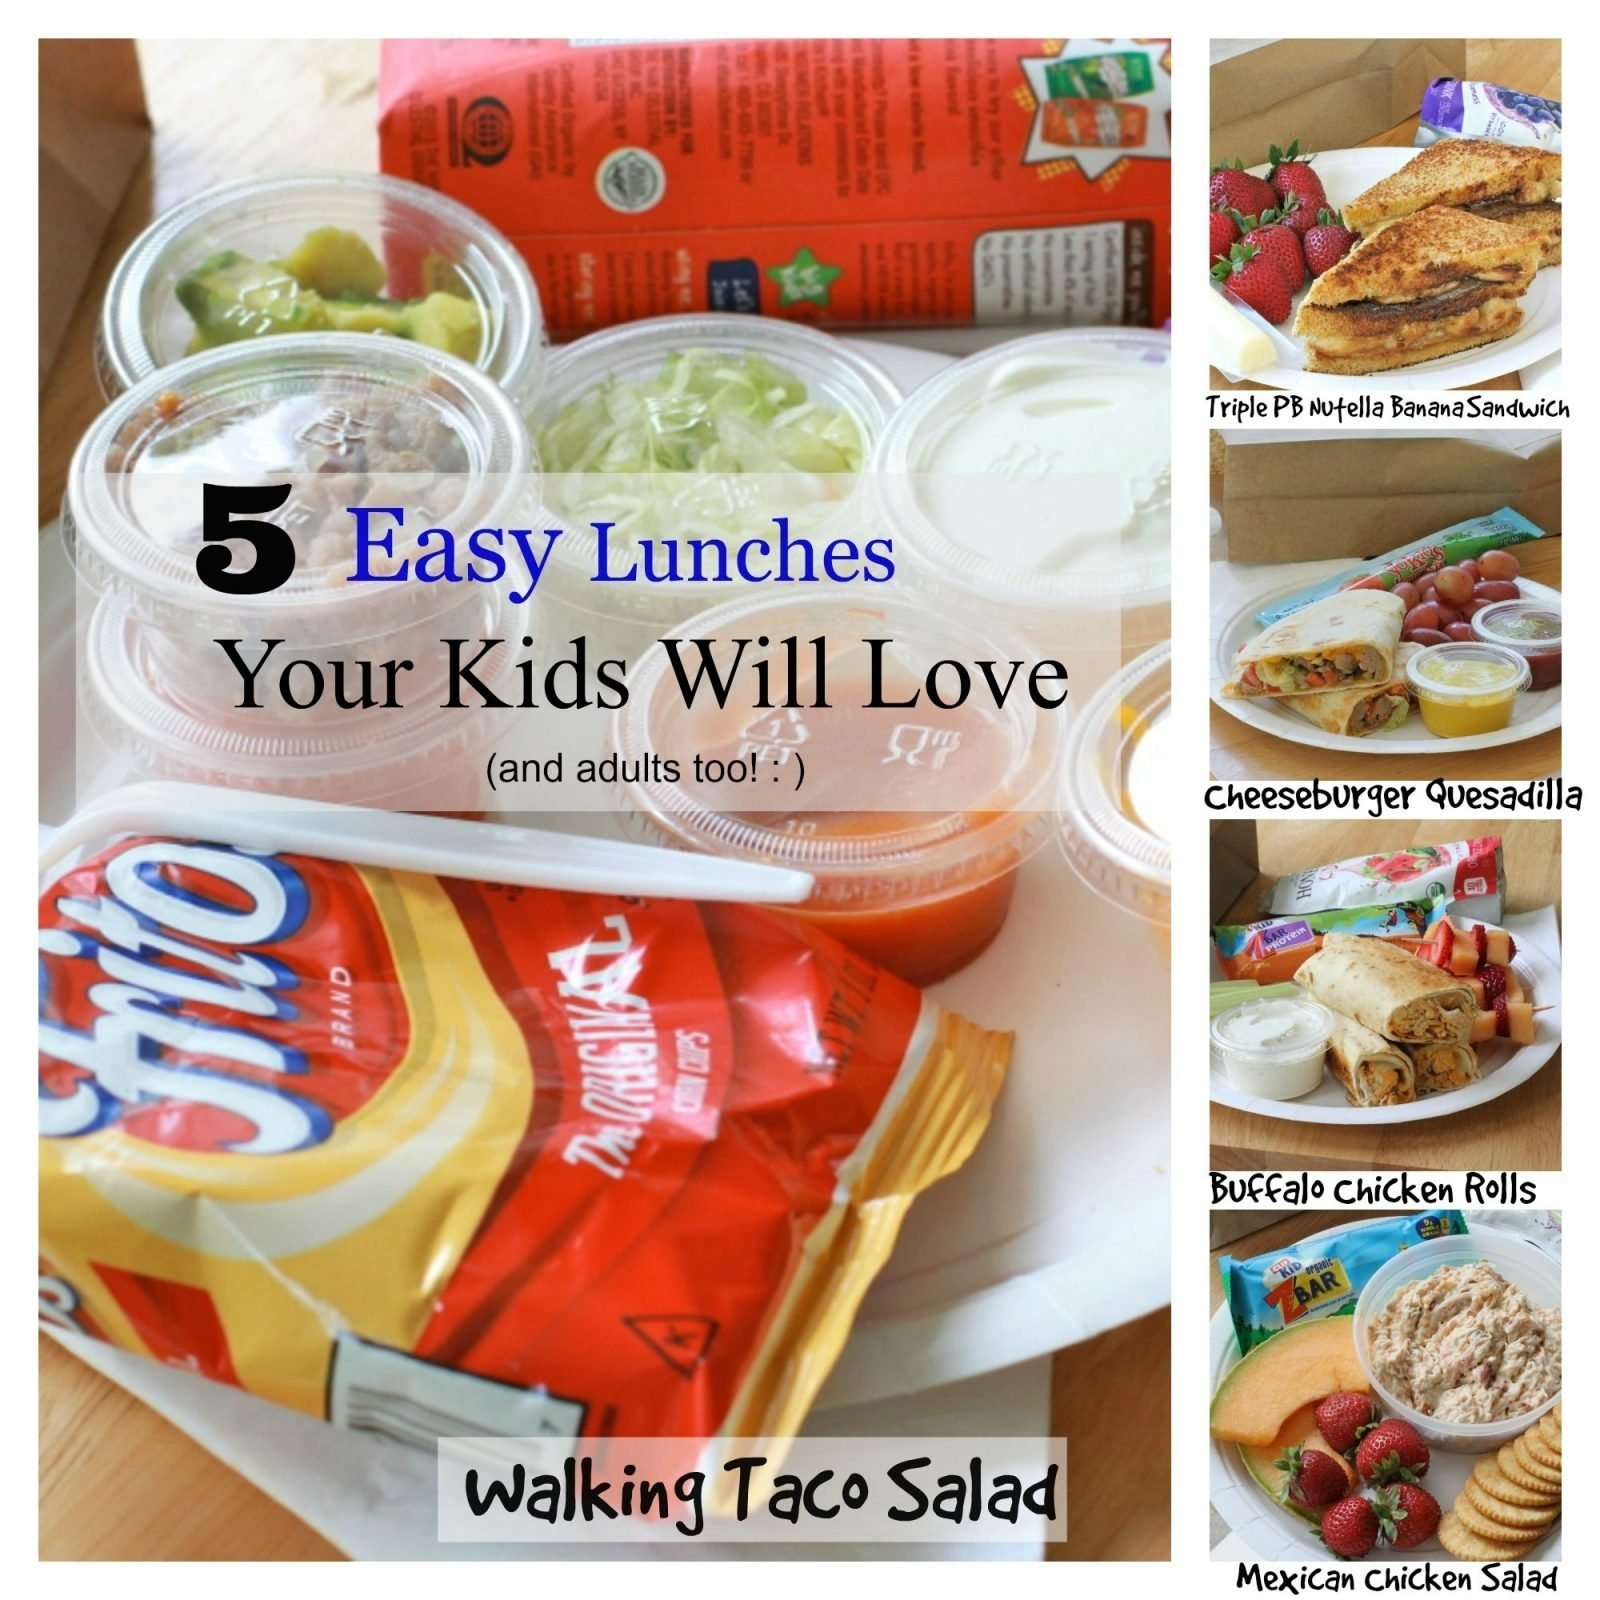 10 Nice Ideas For Kids Lunches For School easy school lunch idea recipes divas can cook 2 2020